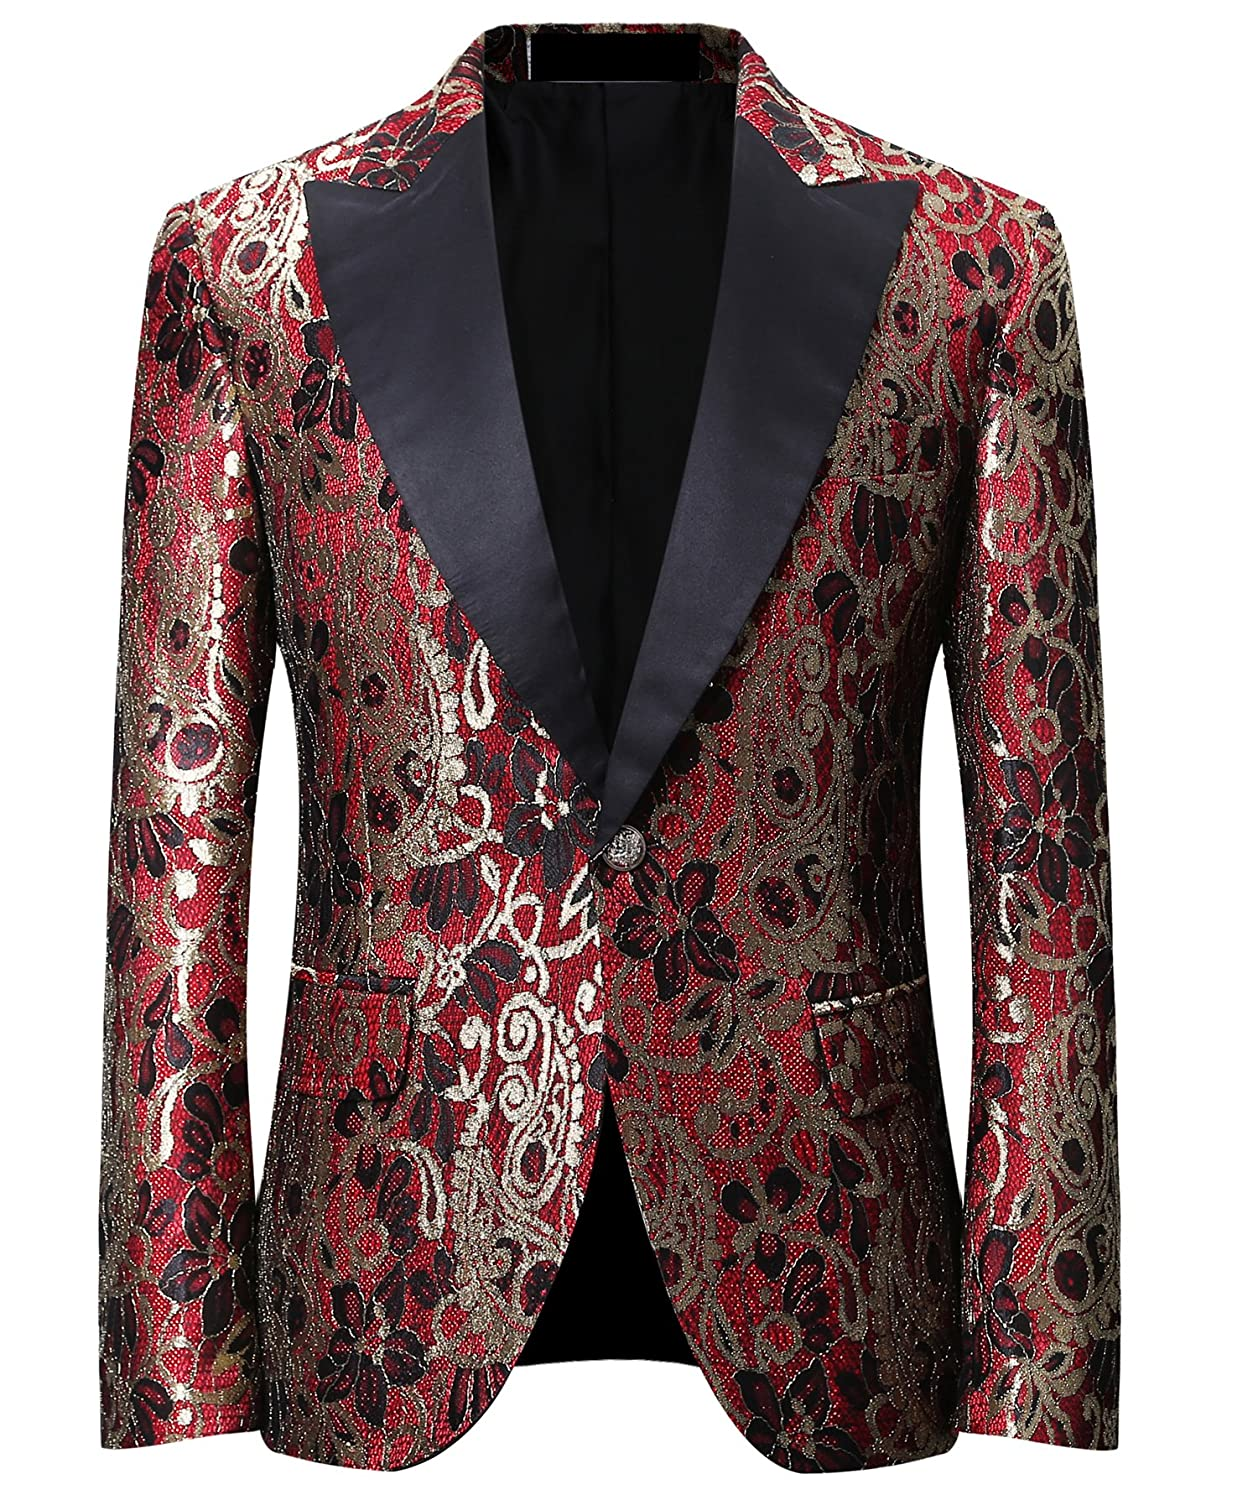 Men's Dinner Jacket Peak Lapel Brilliant Design Tuxedo Tux Wedding Stage Club Party Coat EH1051419